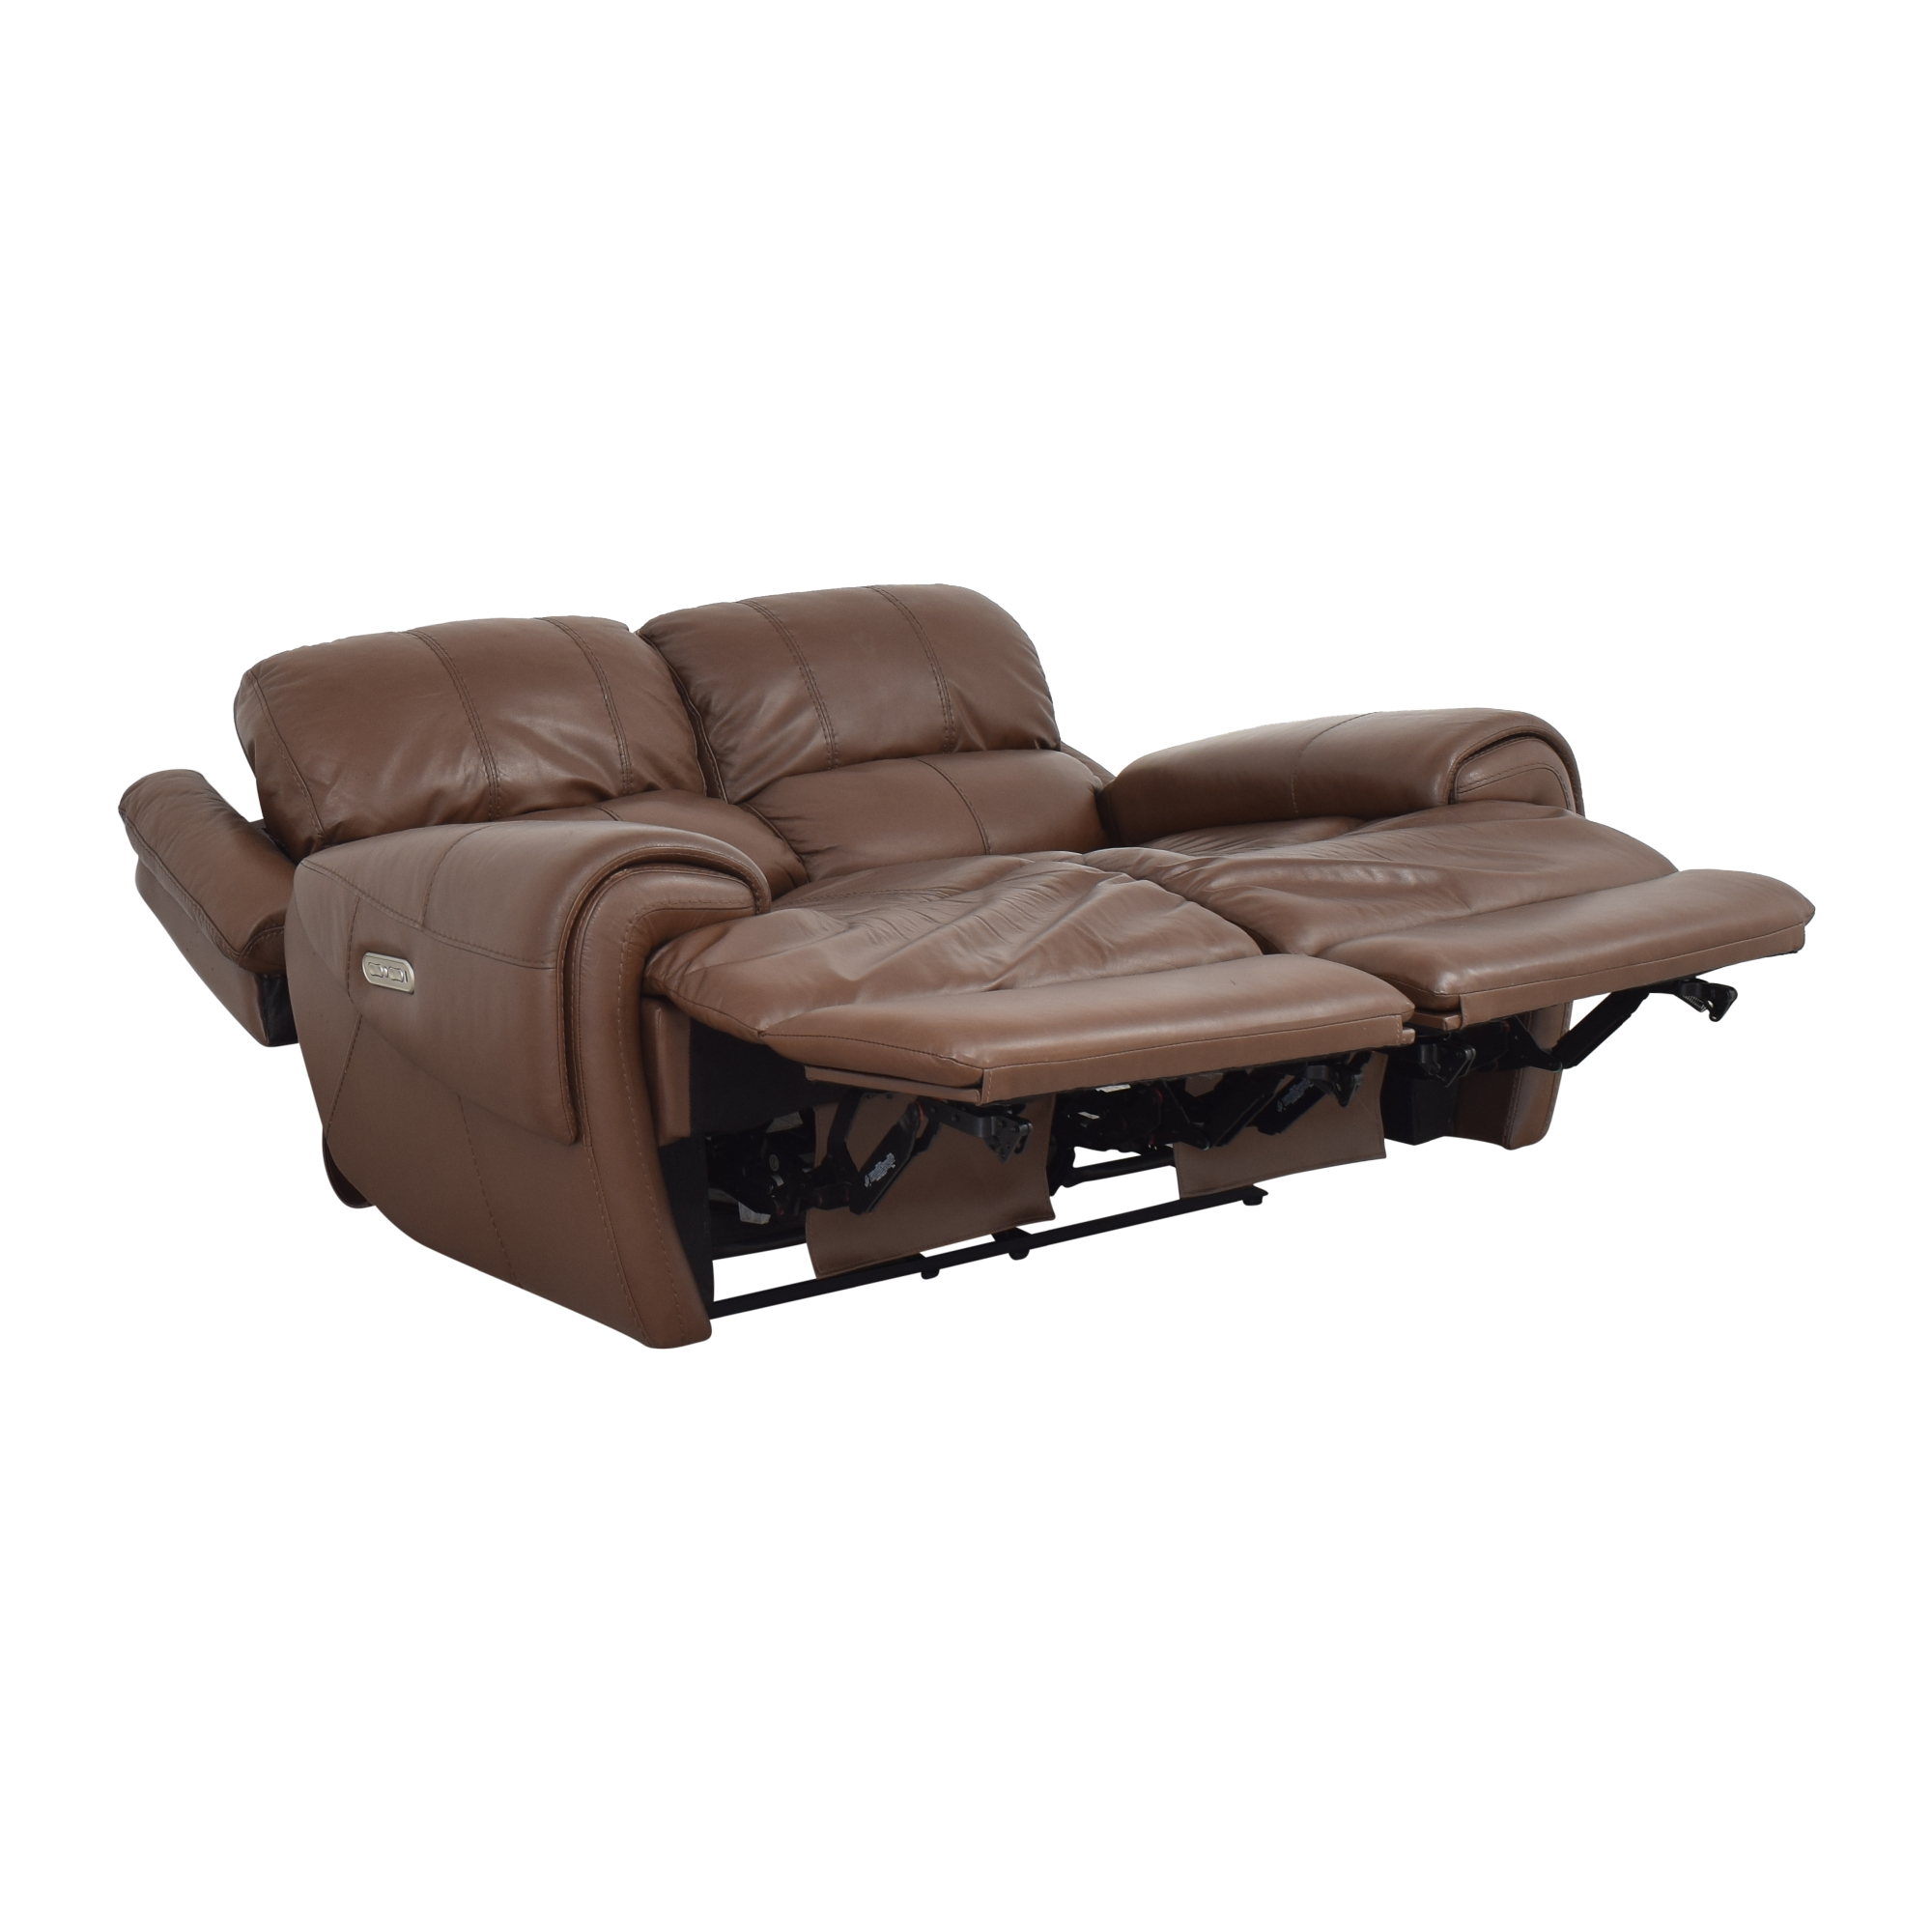 Raymour & Flanigan Raymour & Flanigan Colvin Power-Reclining Loveseat brown